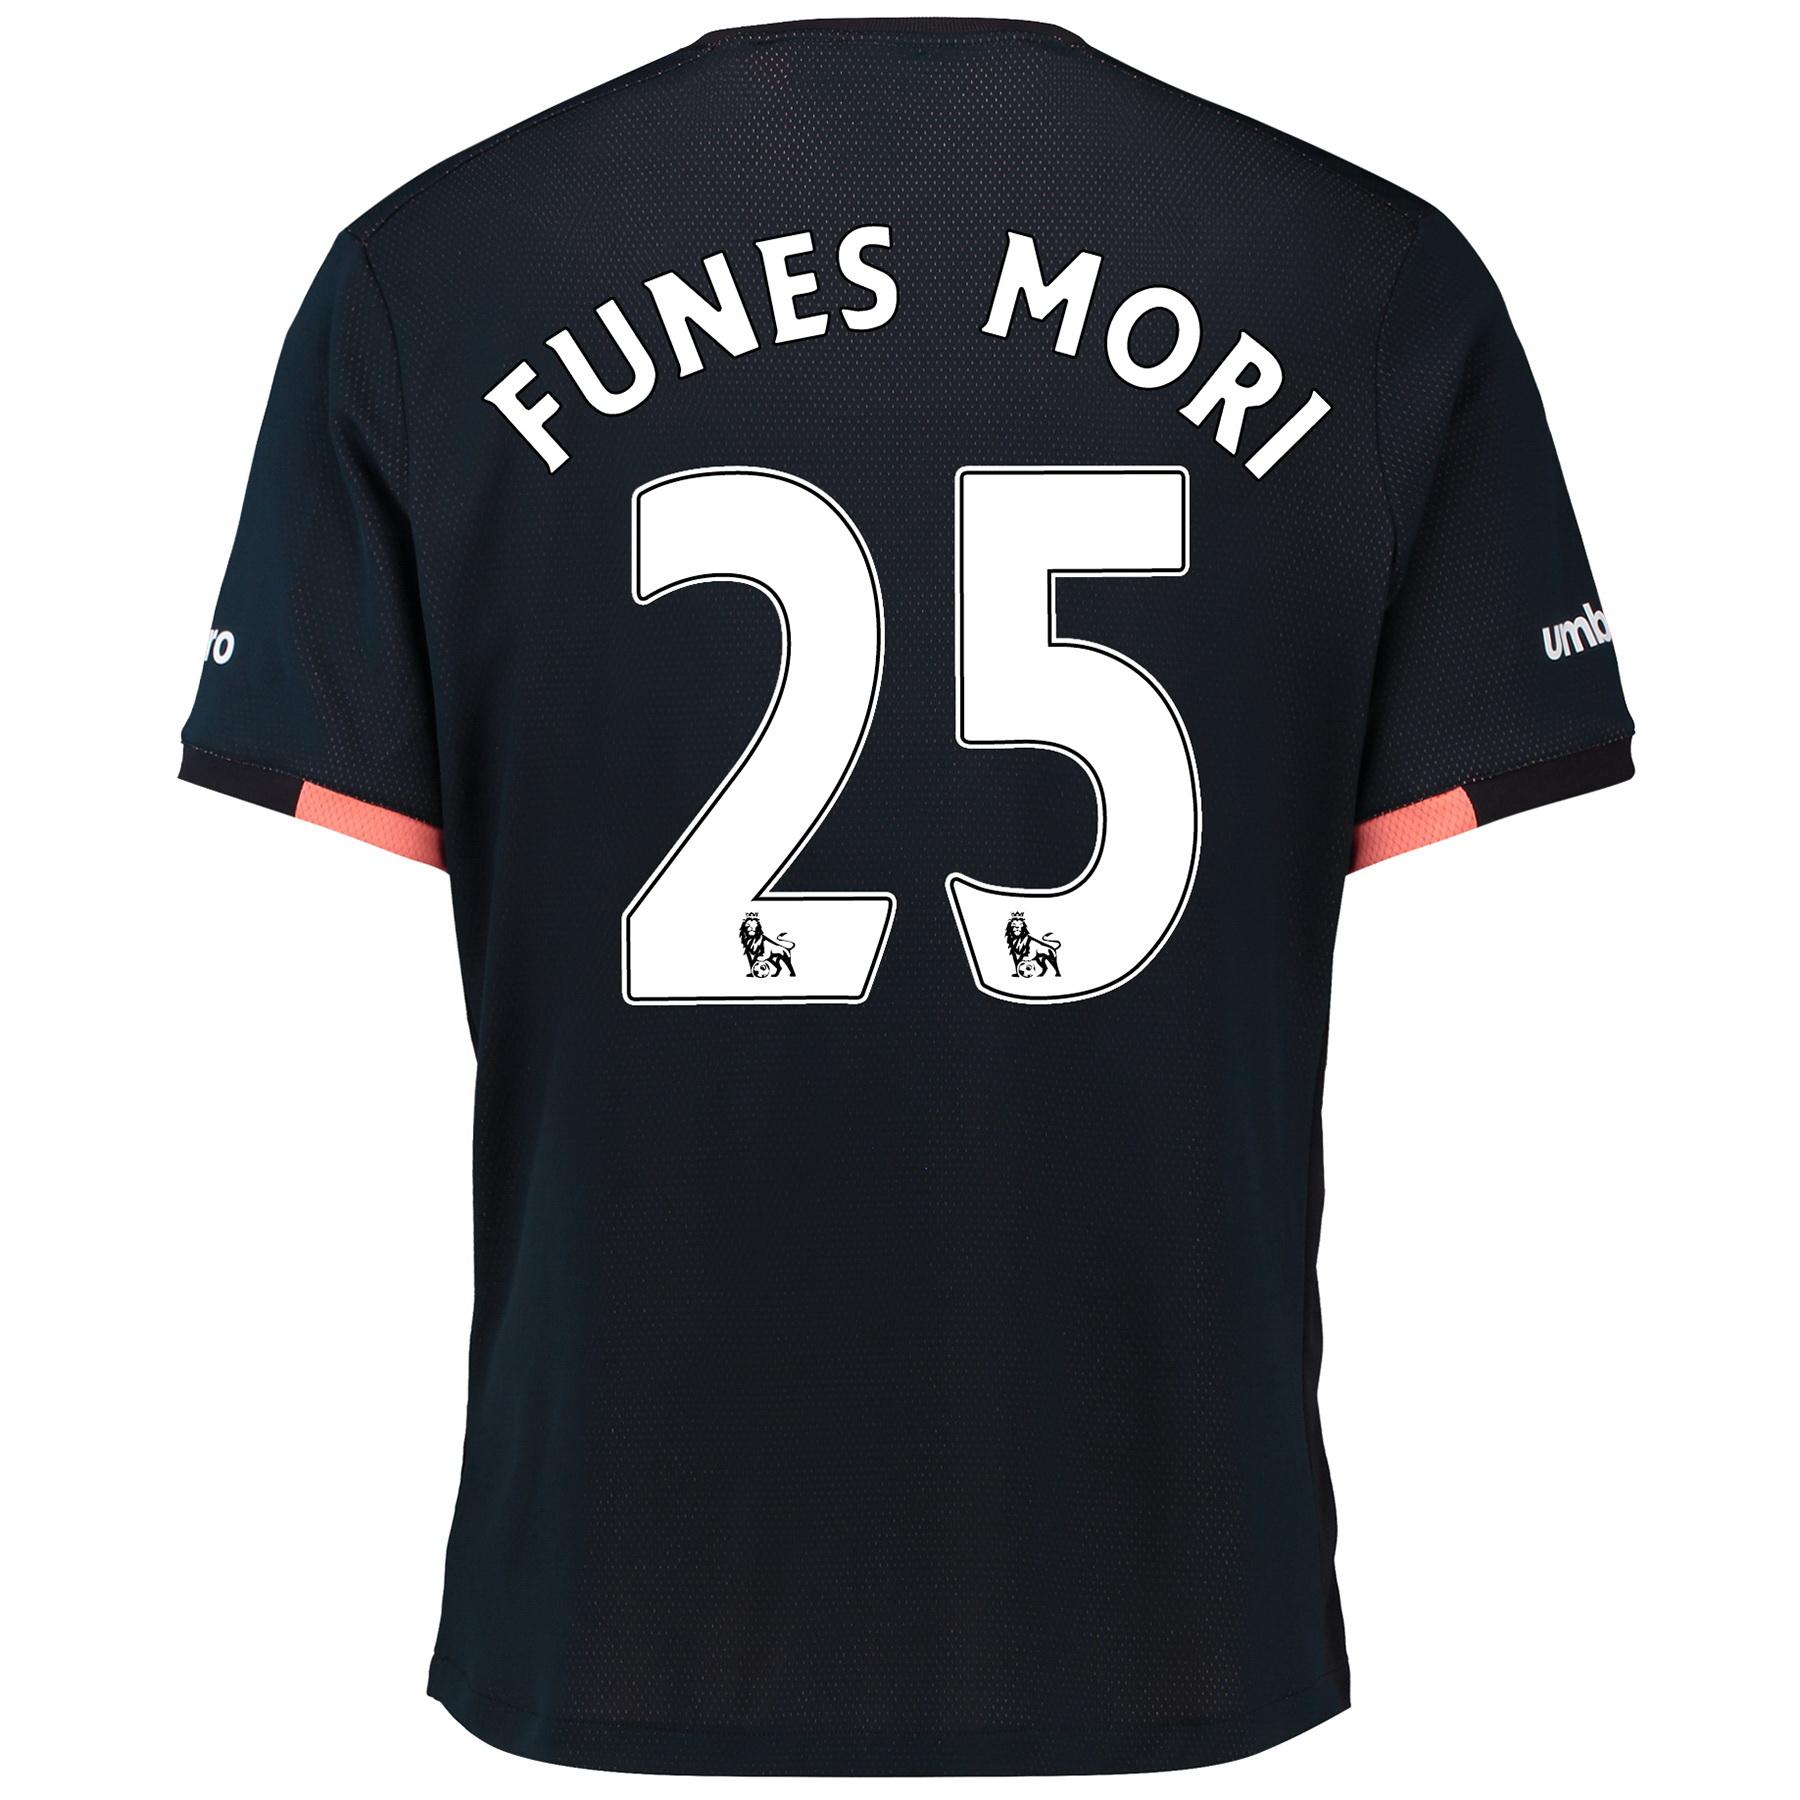 Everton Away Baby Kit 2016/17 with Funes Mori 25 printing